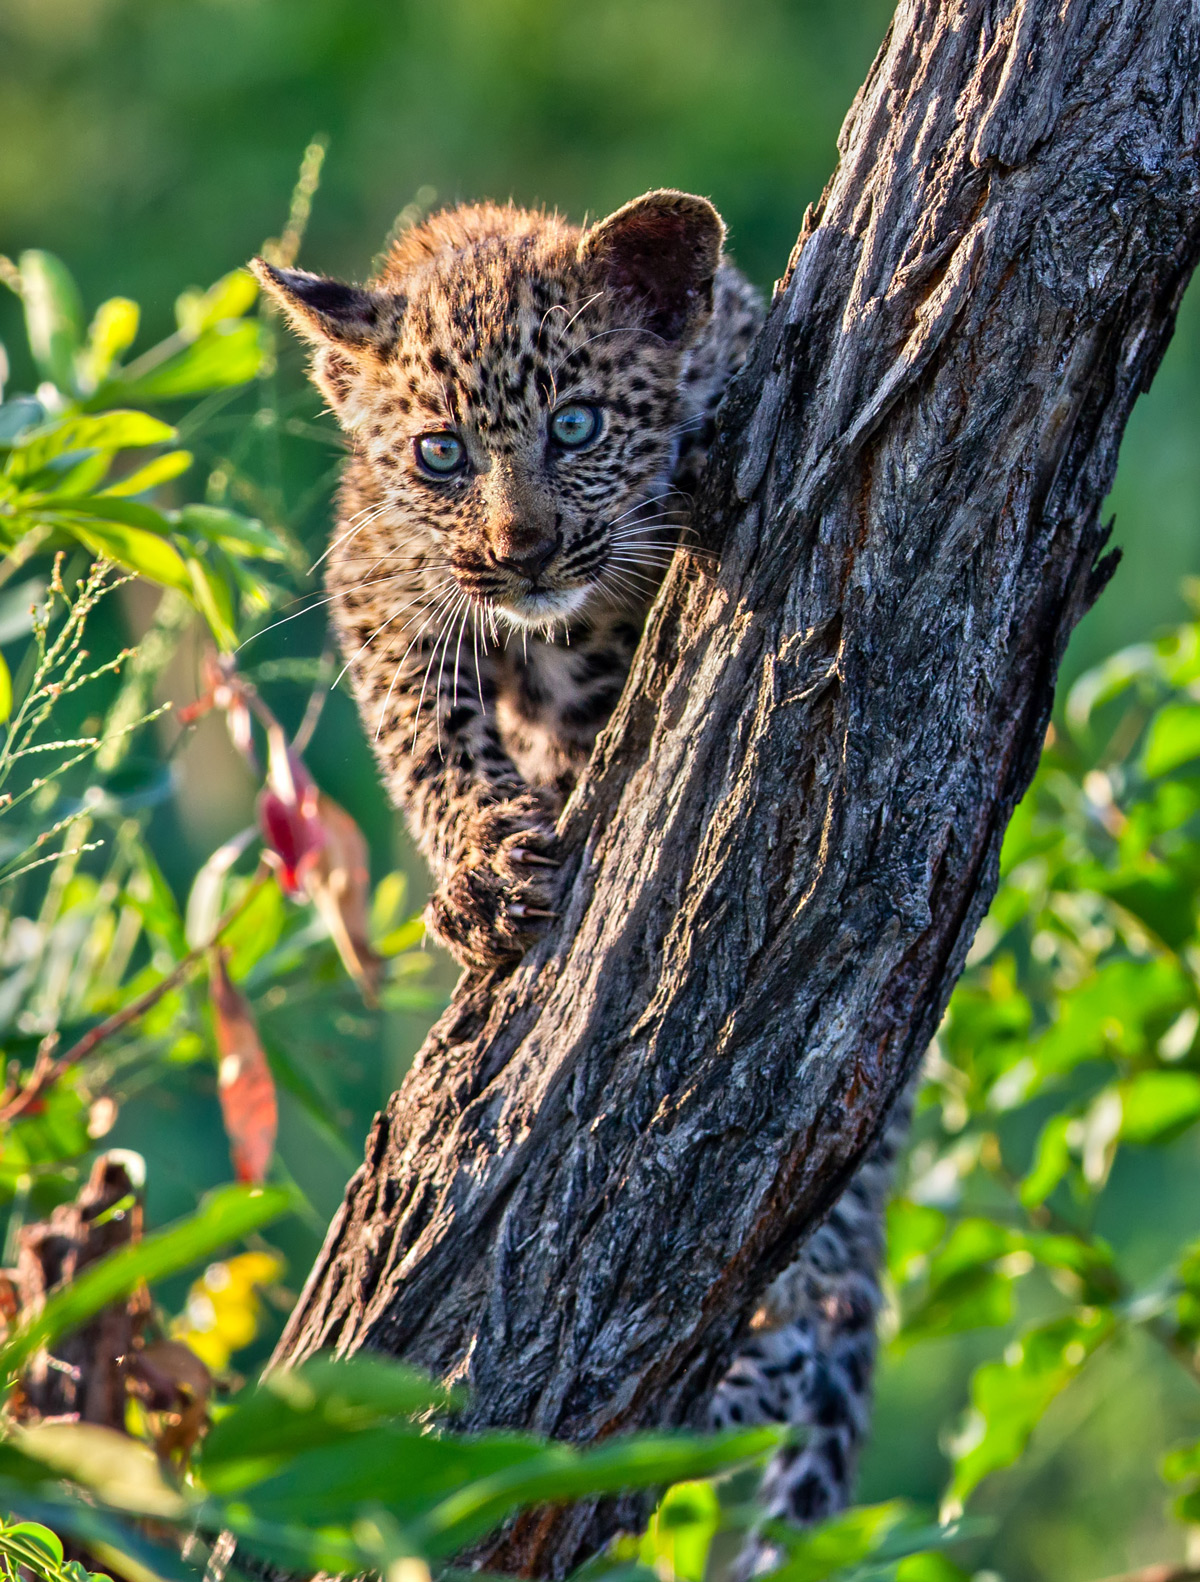 A leopard cub climbs up the nearest tree after mommy charged towards an approaching hyena in Sabi Sands Private Game Reserve, South Africa © Ernest Porter